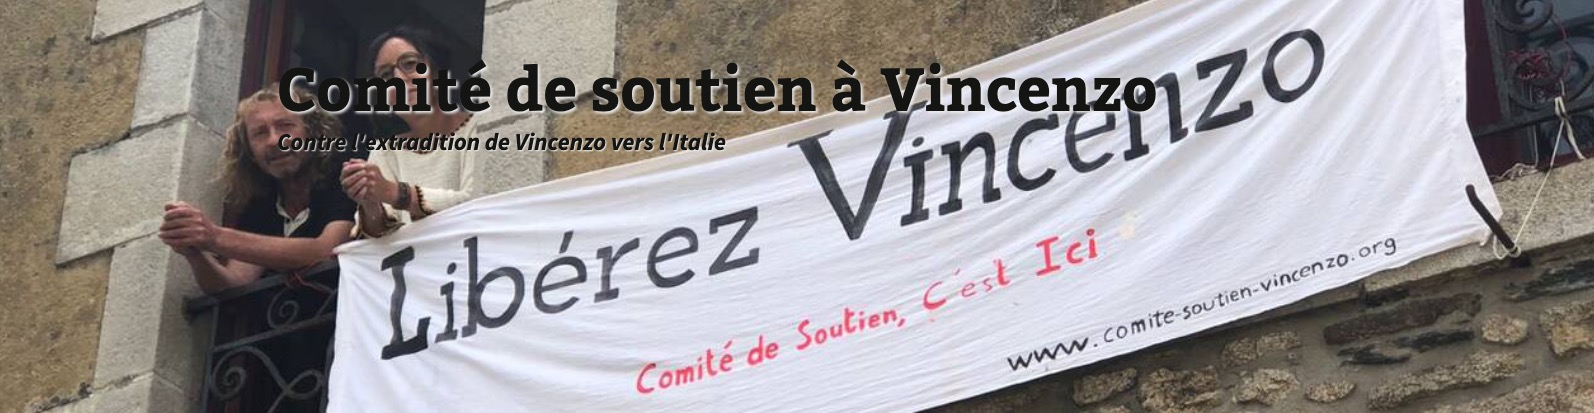 Causes communes 56 soutient Vicenzo